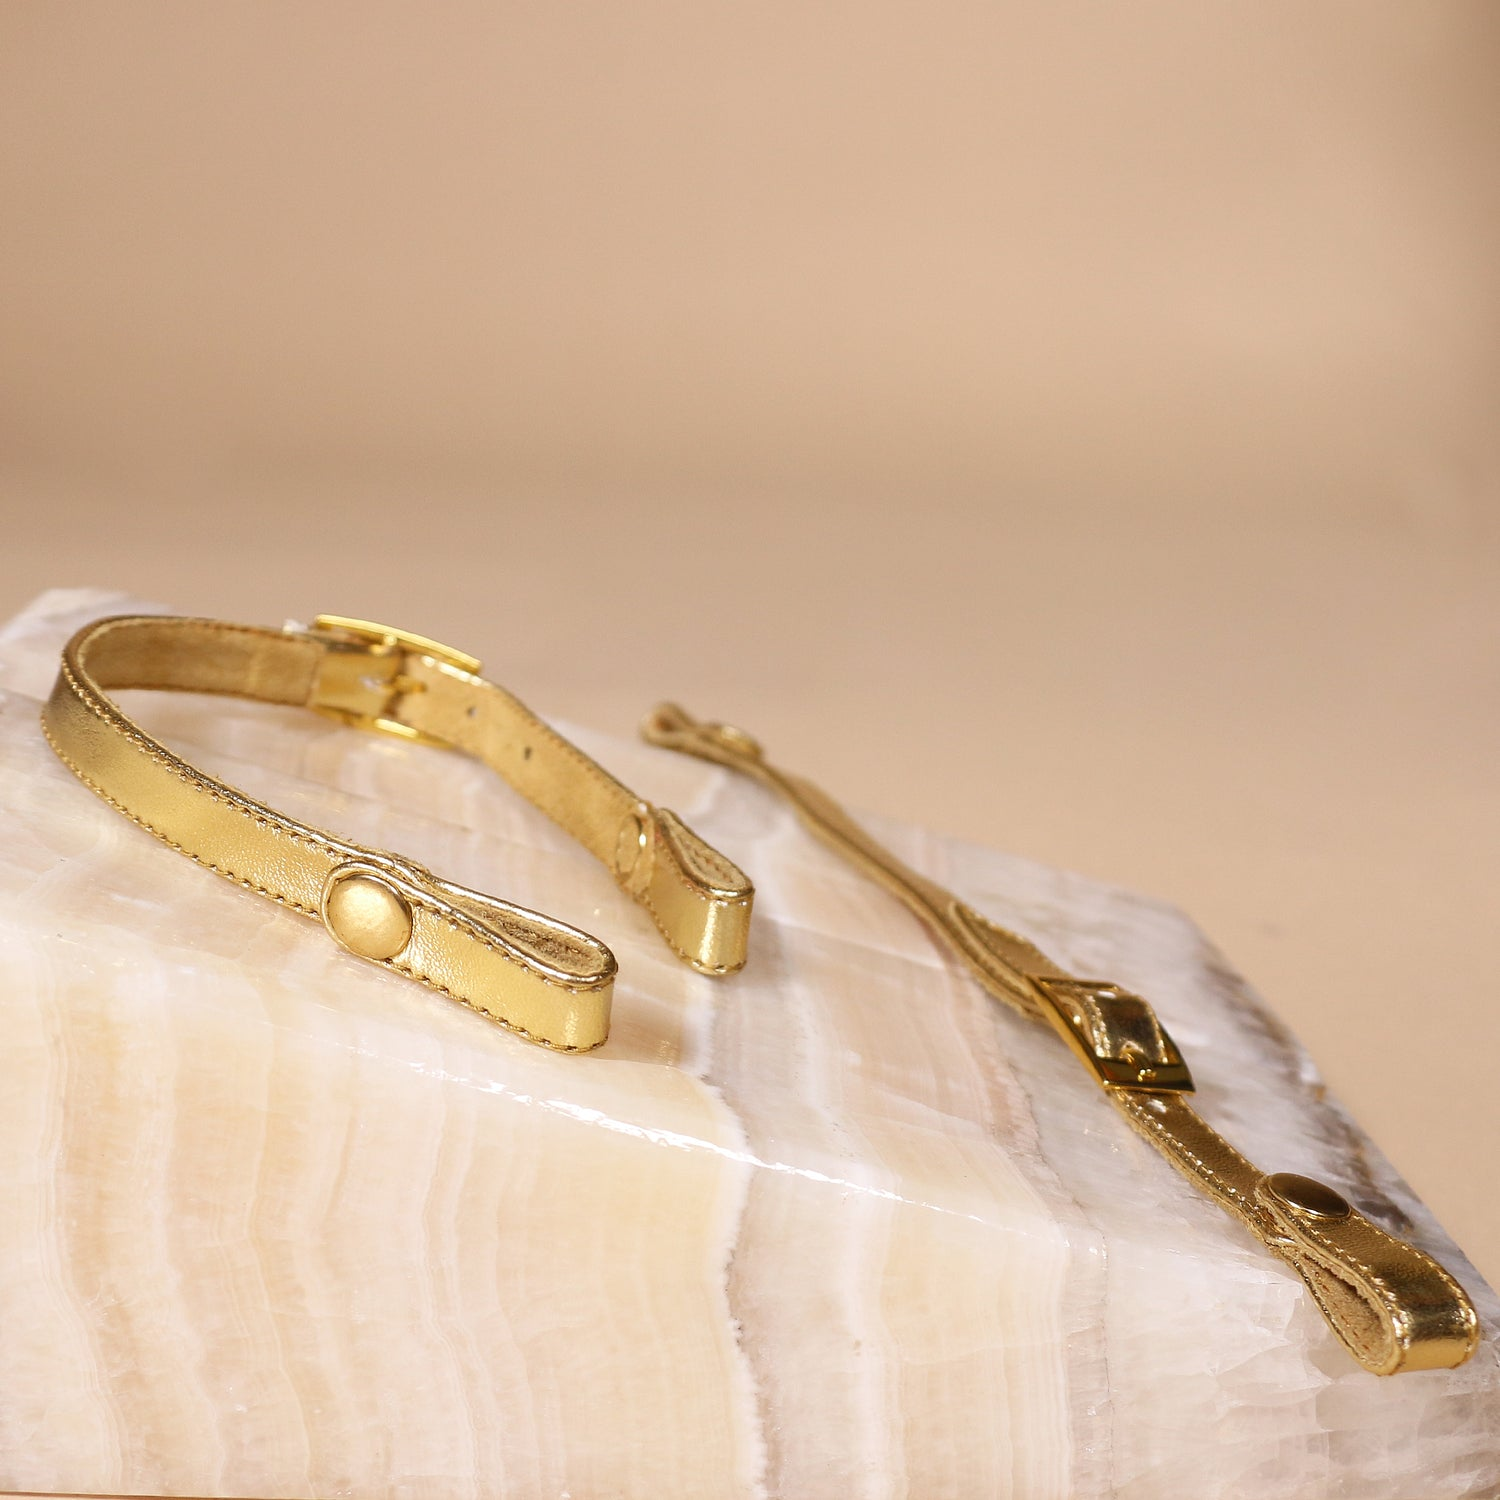 Removable Gold Back Straps - Set of 2